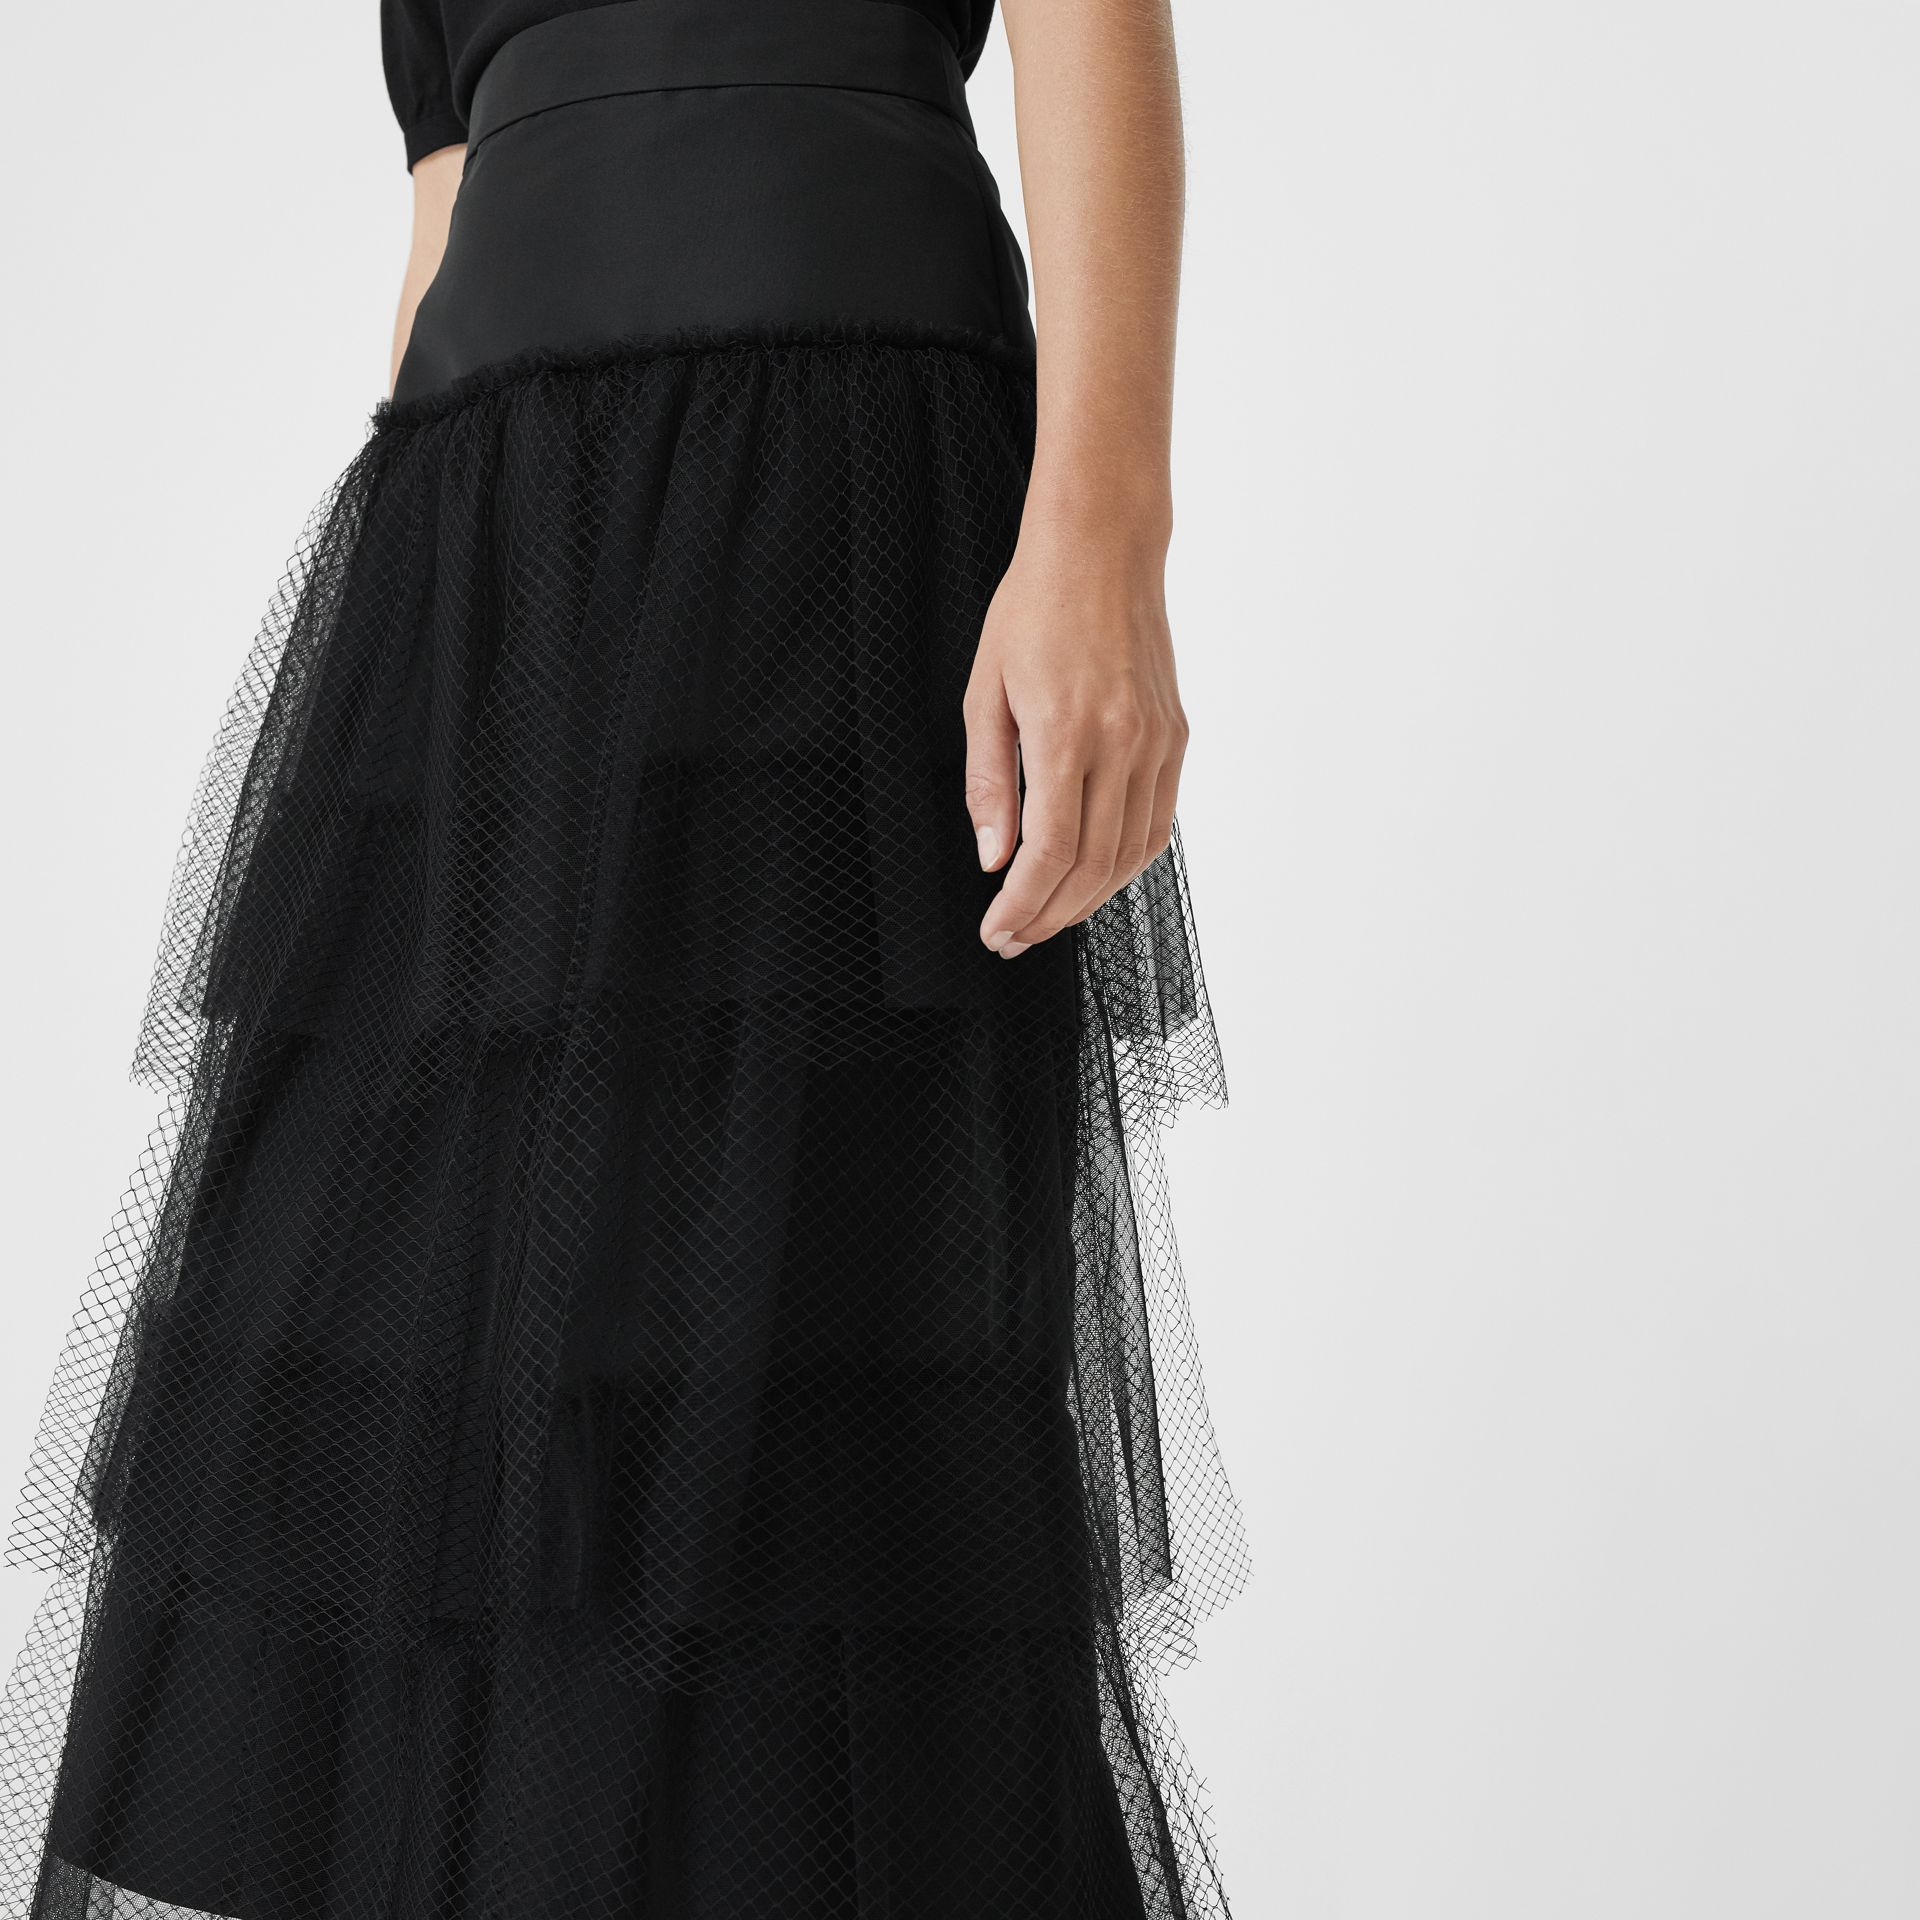 Tiered Tulle A-line Skirt in Black - Women | Burberry - gallery image 1